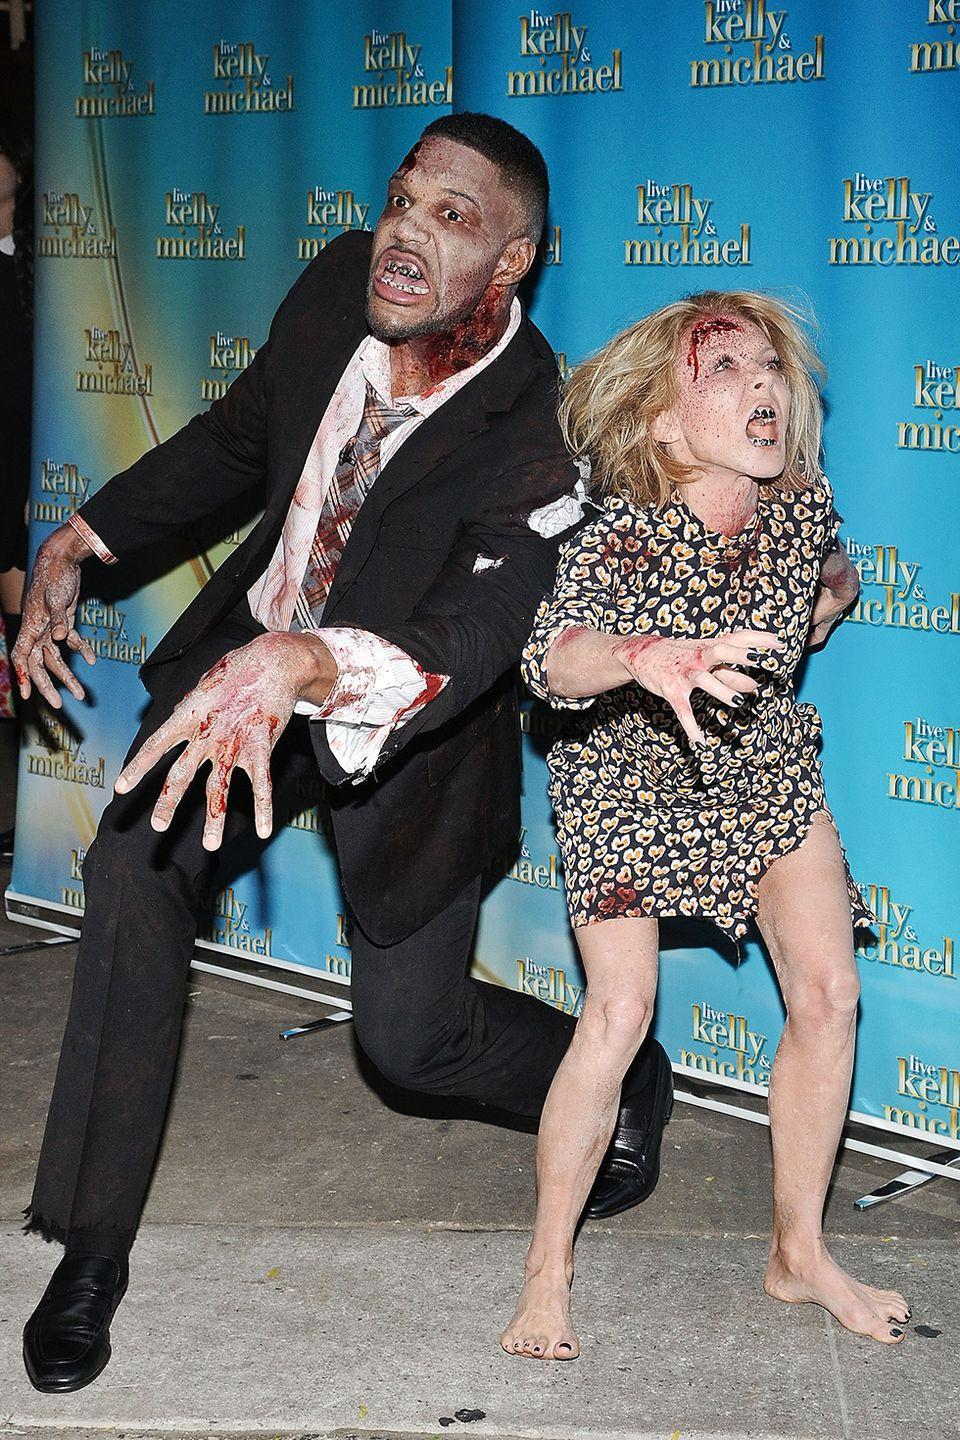 <p>Michael Strahan and Kelly Ripa rocked their best zombie looks in 2014 for the <em>Live With Kelly & Michael</em> Halloween show. Dance moves not necessary.</p>